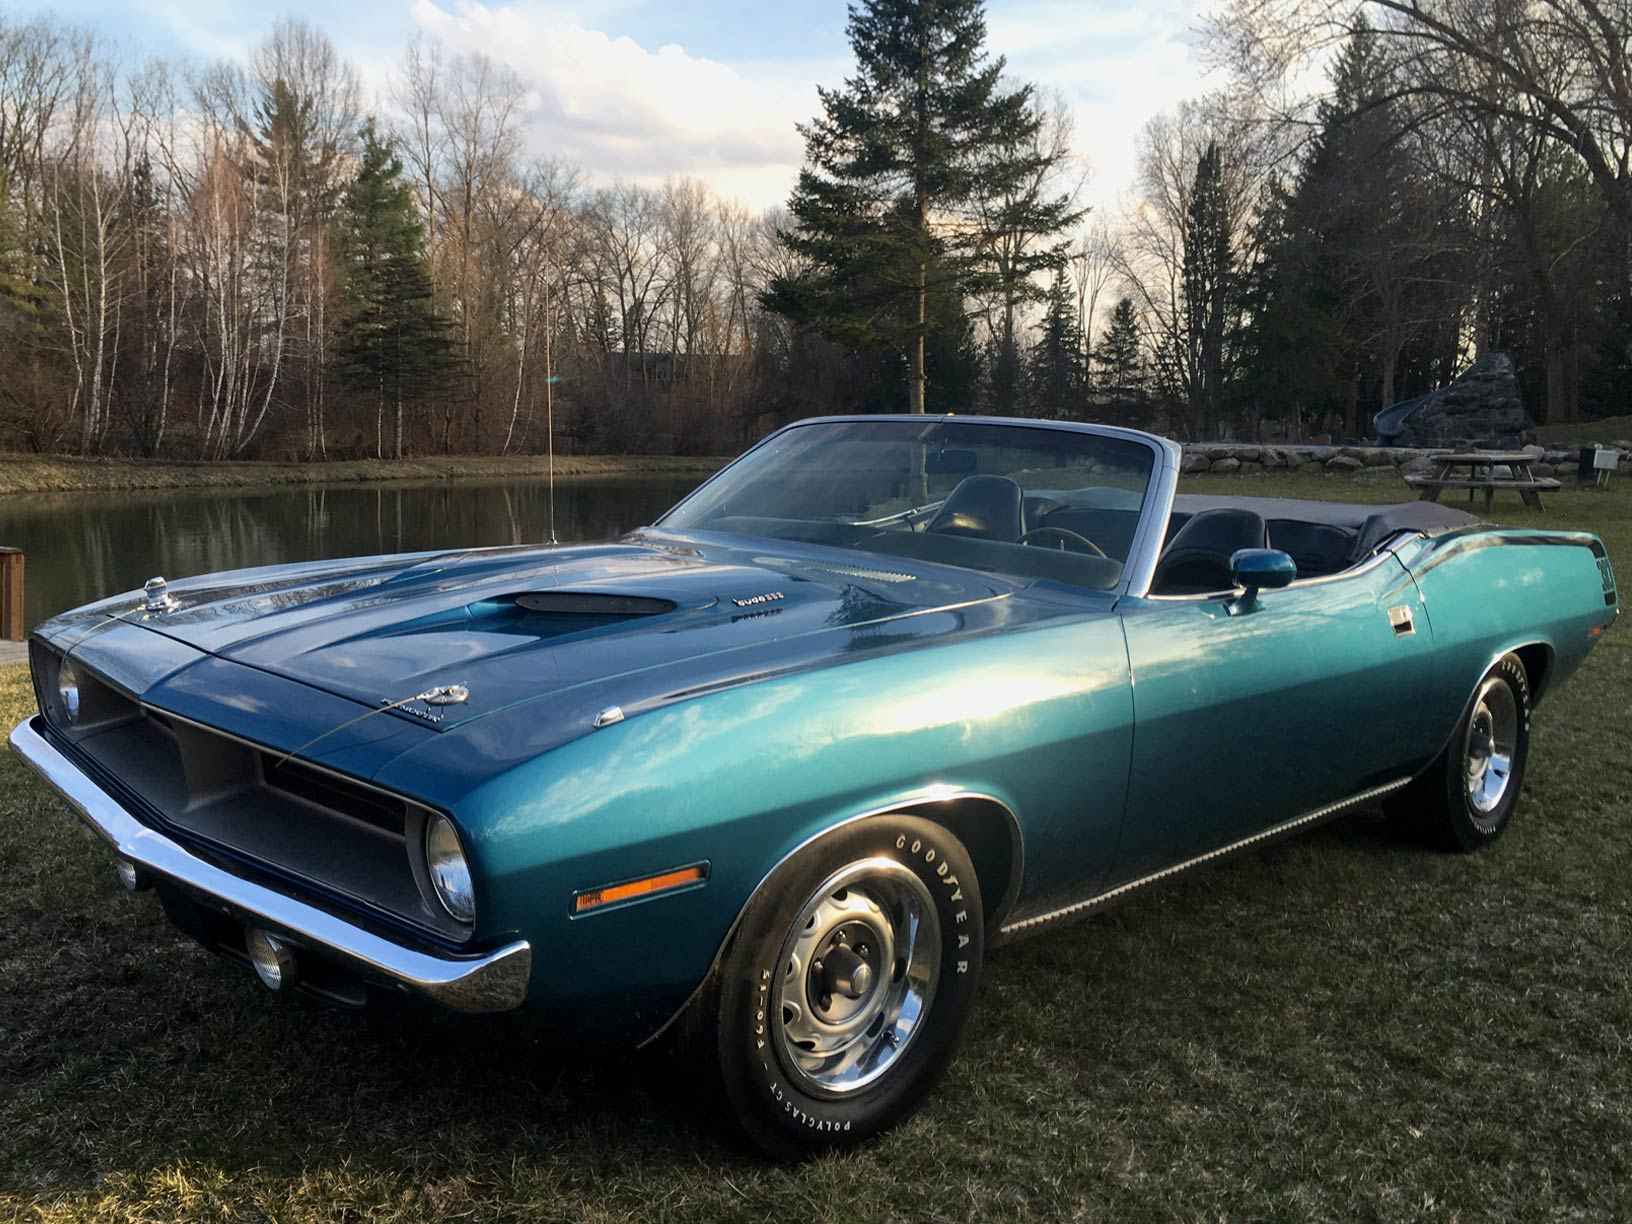 1970 Plymouth Cuda Convertible B7 Blue, 383 Rallye Dash Restored